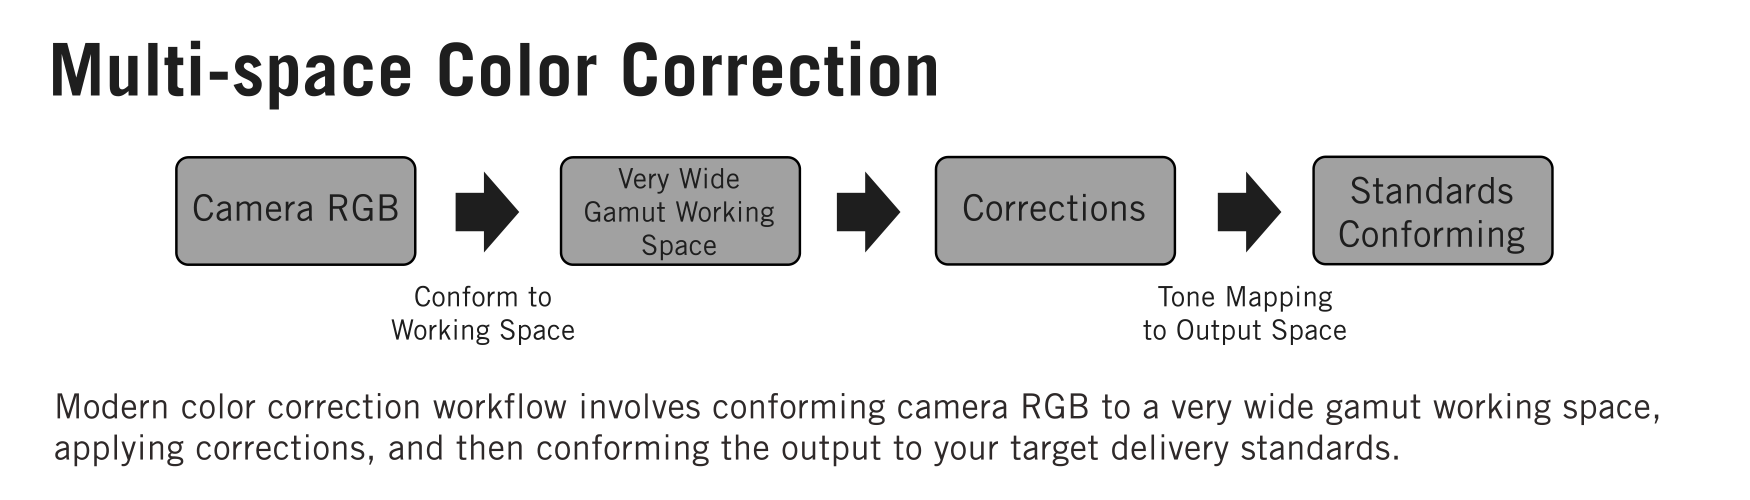 Modern Multi-space Color Correction using Wide Color Gamuts block diagram